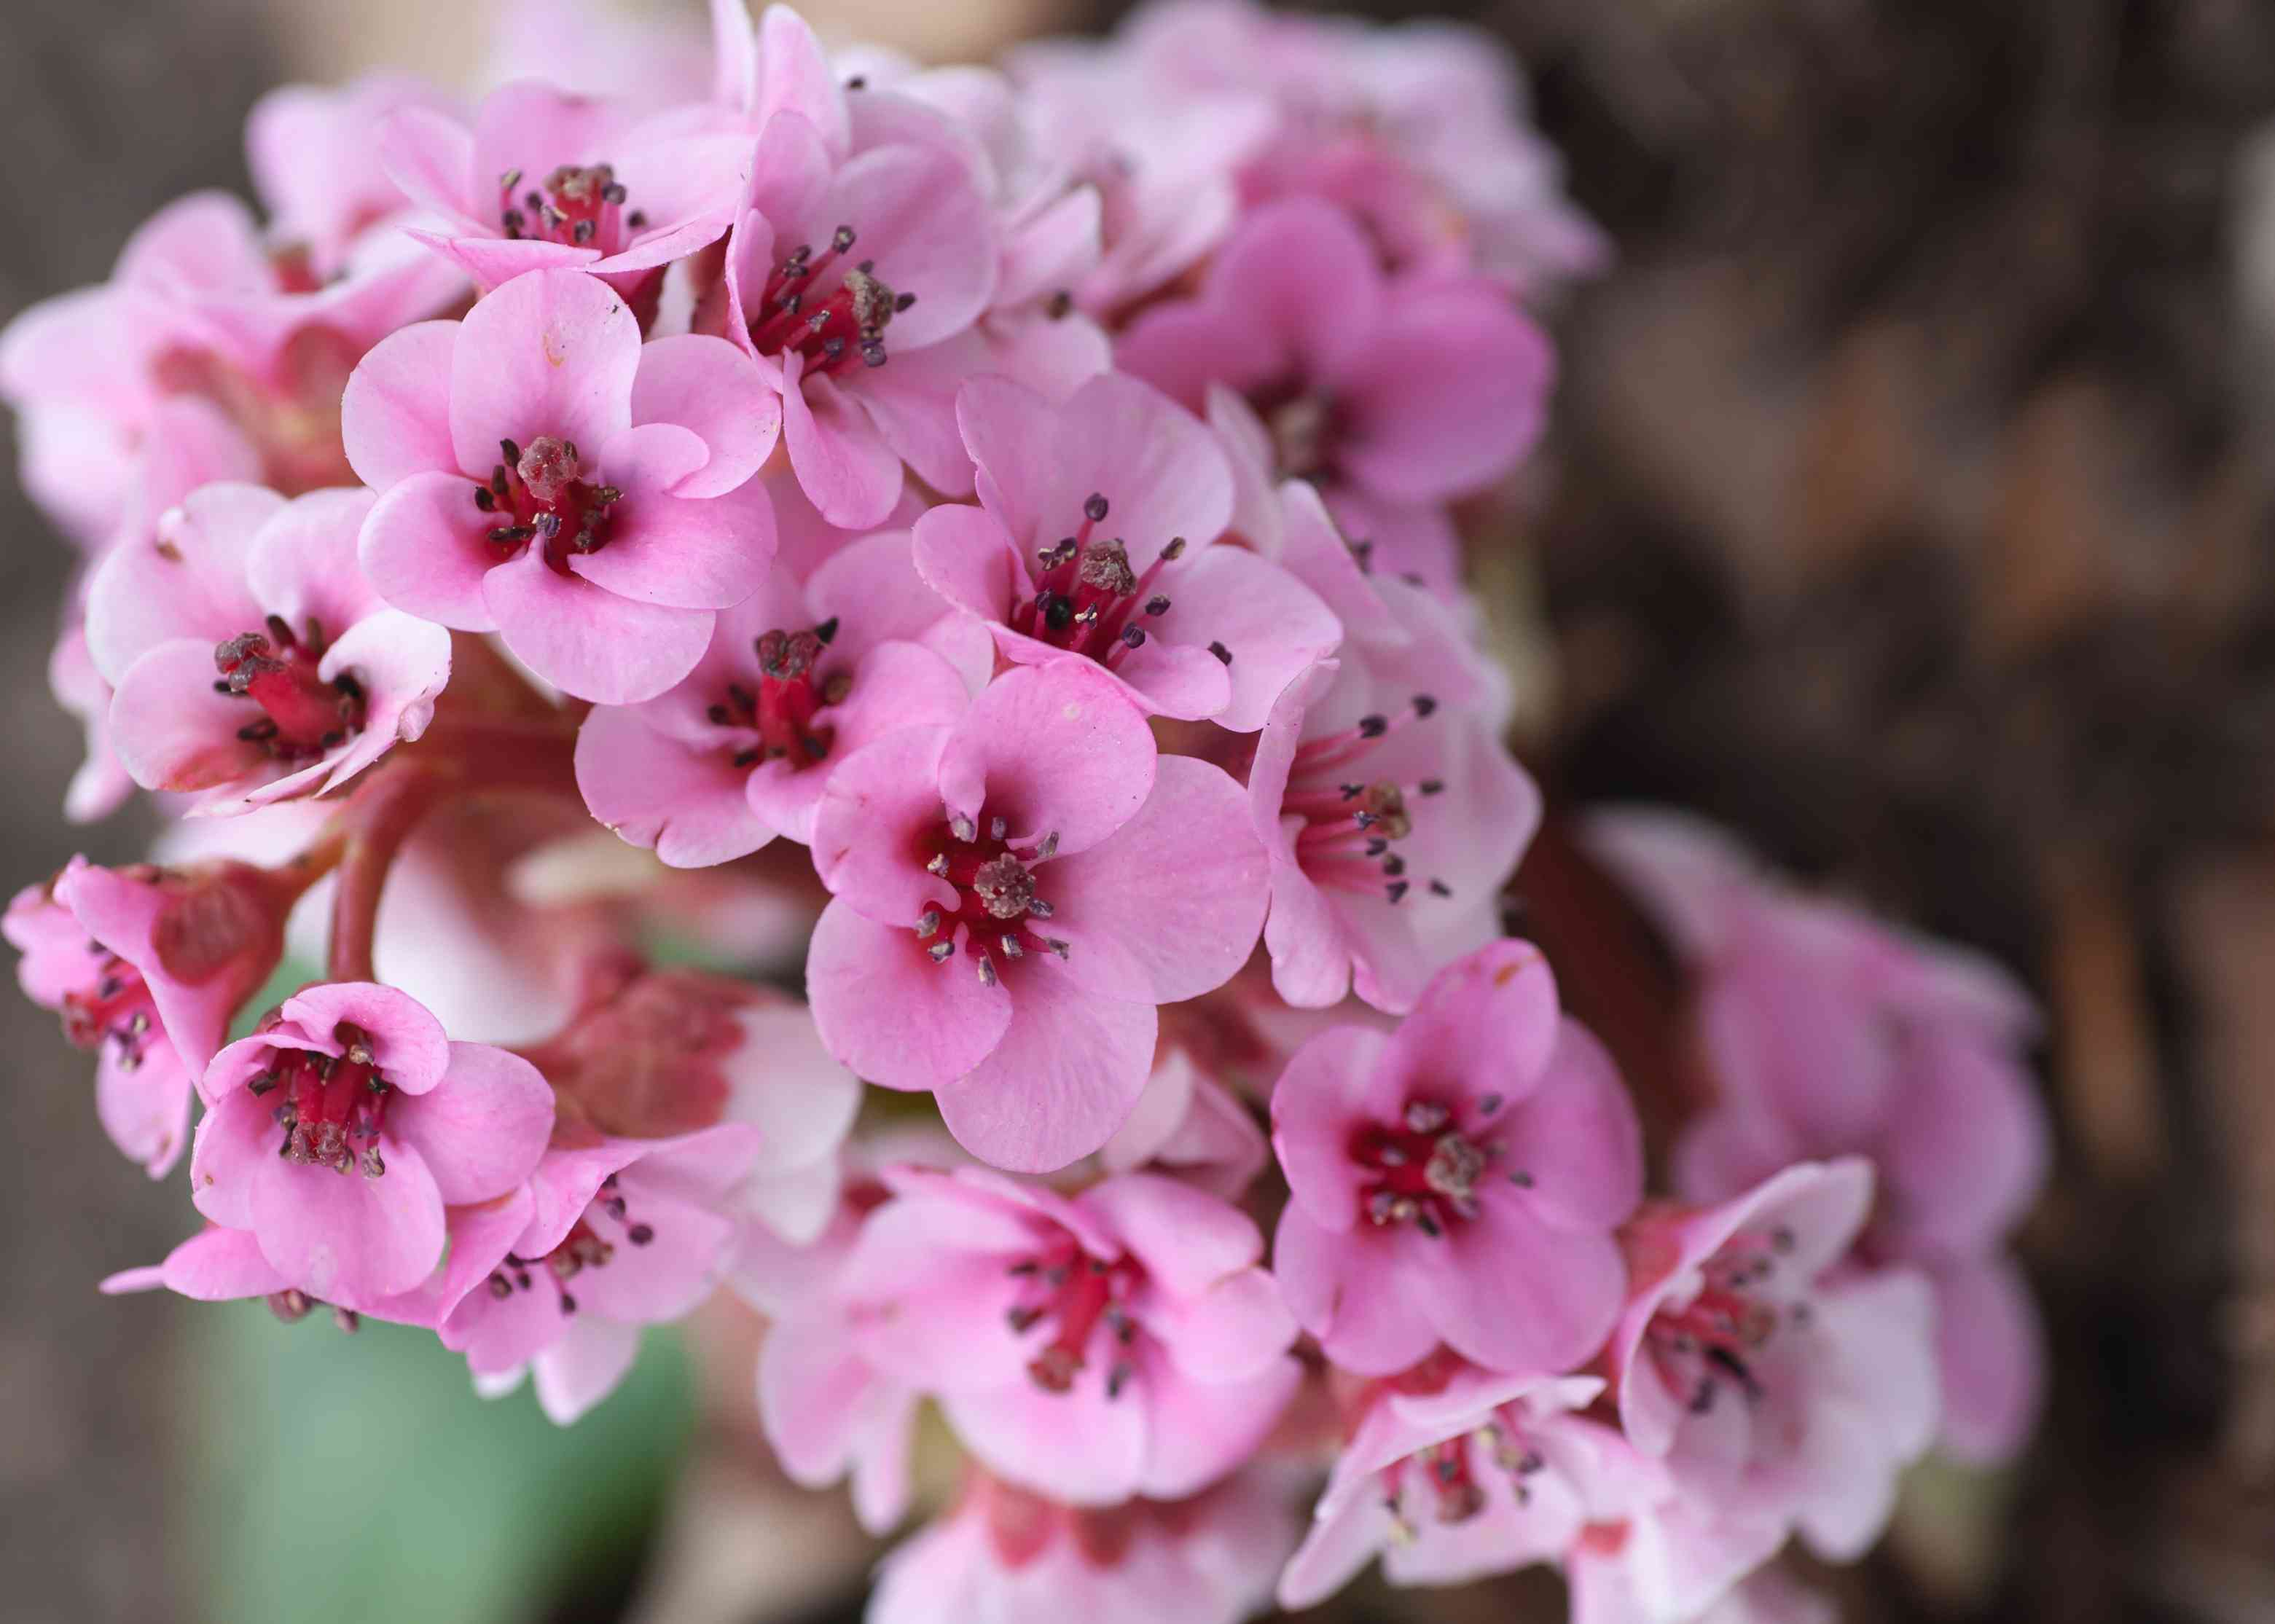 Bergenia plant with small pink flowers clustered together closeup